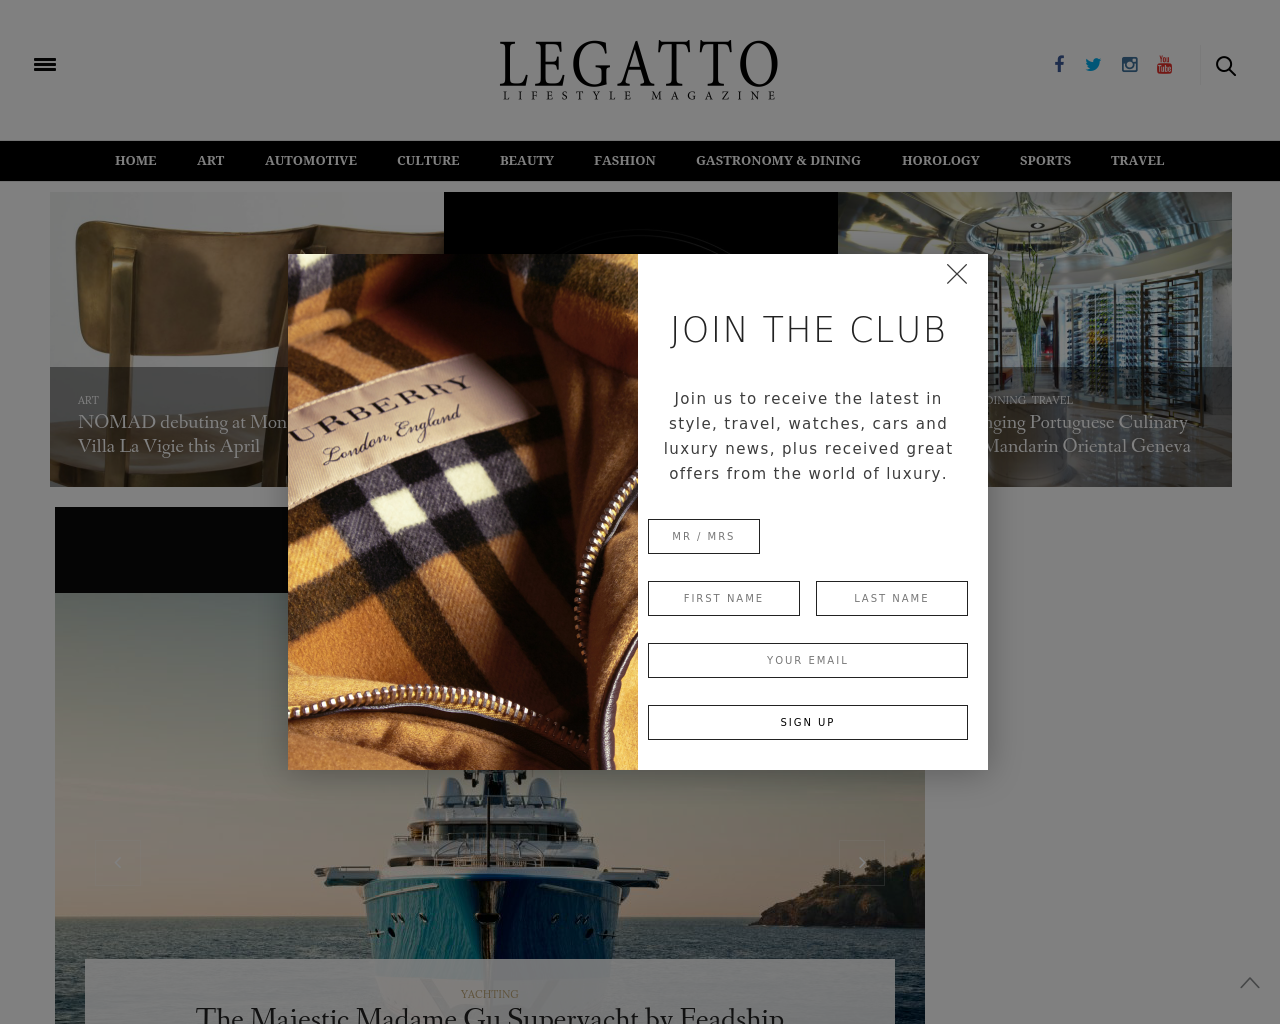 Legatto-Lifestyle-Advertising-Reviews-Pricing